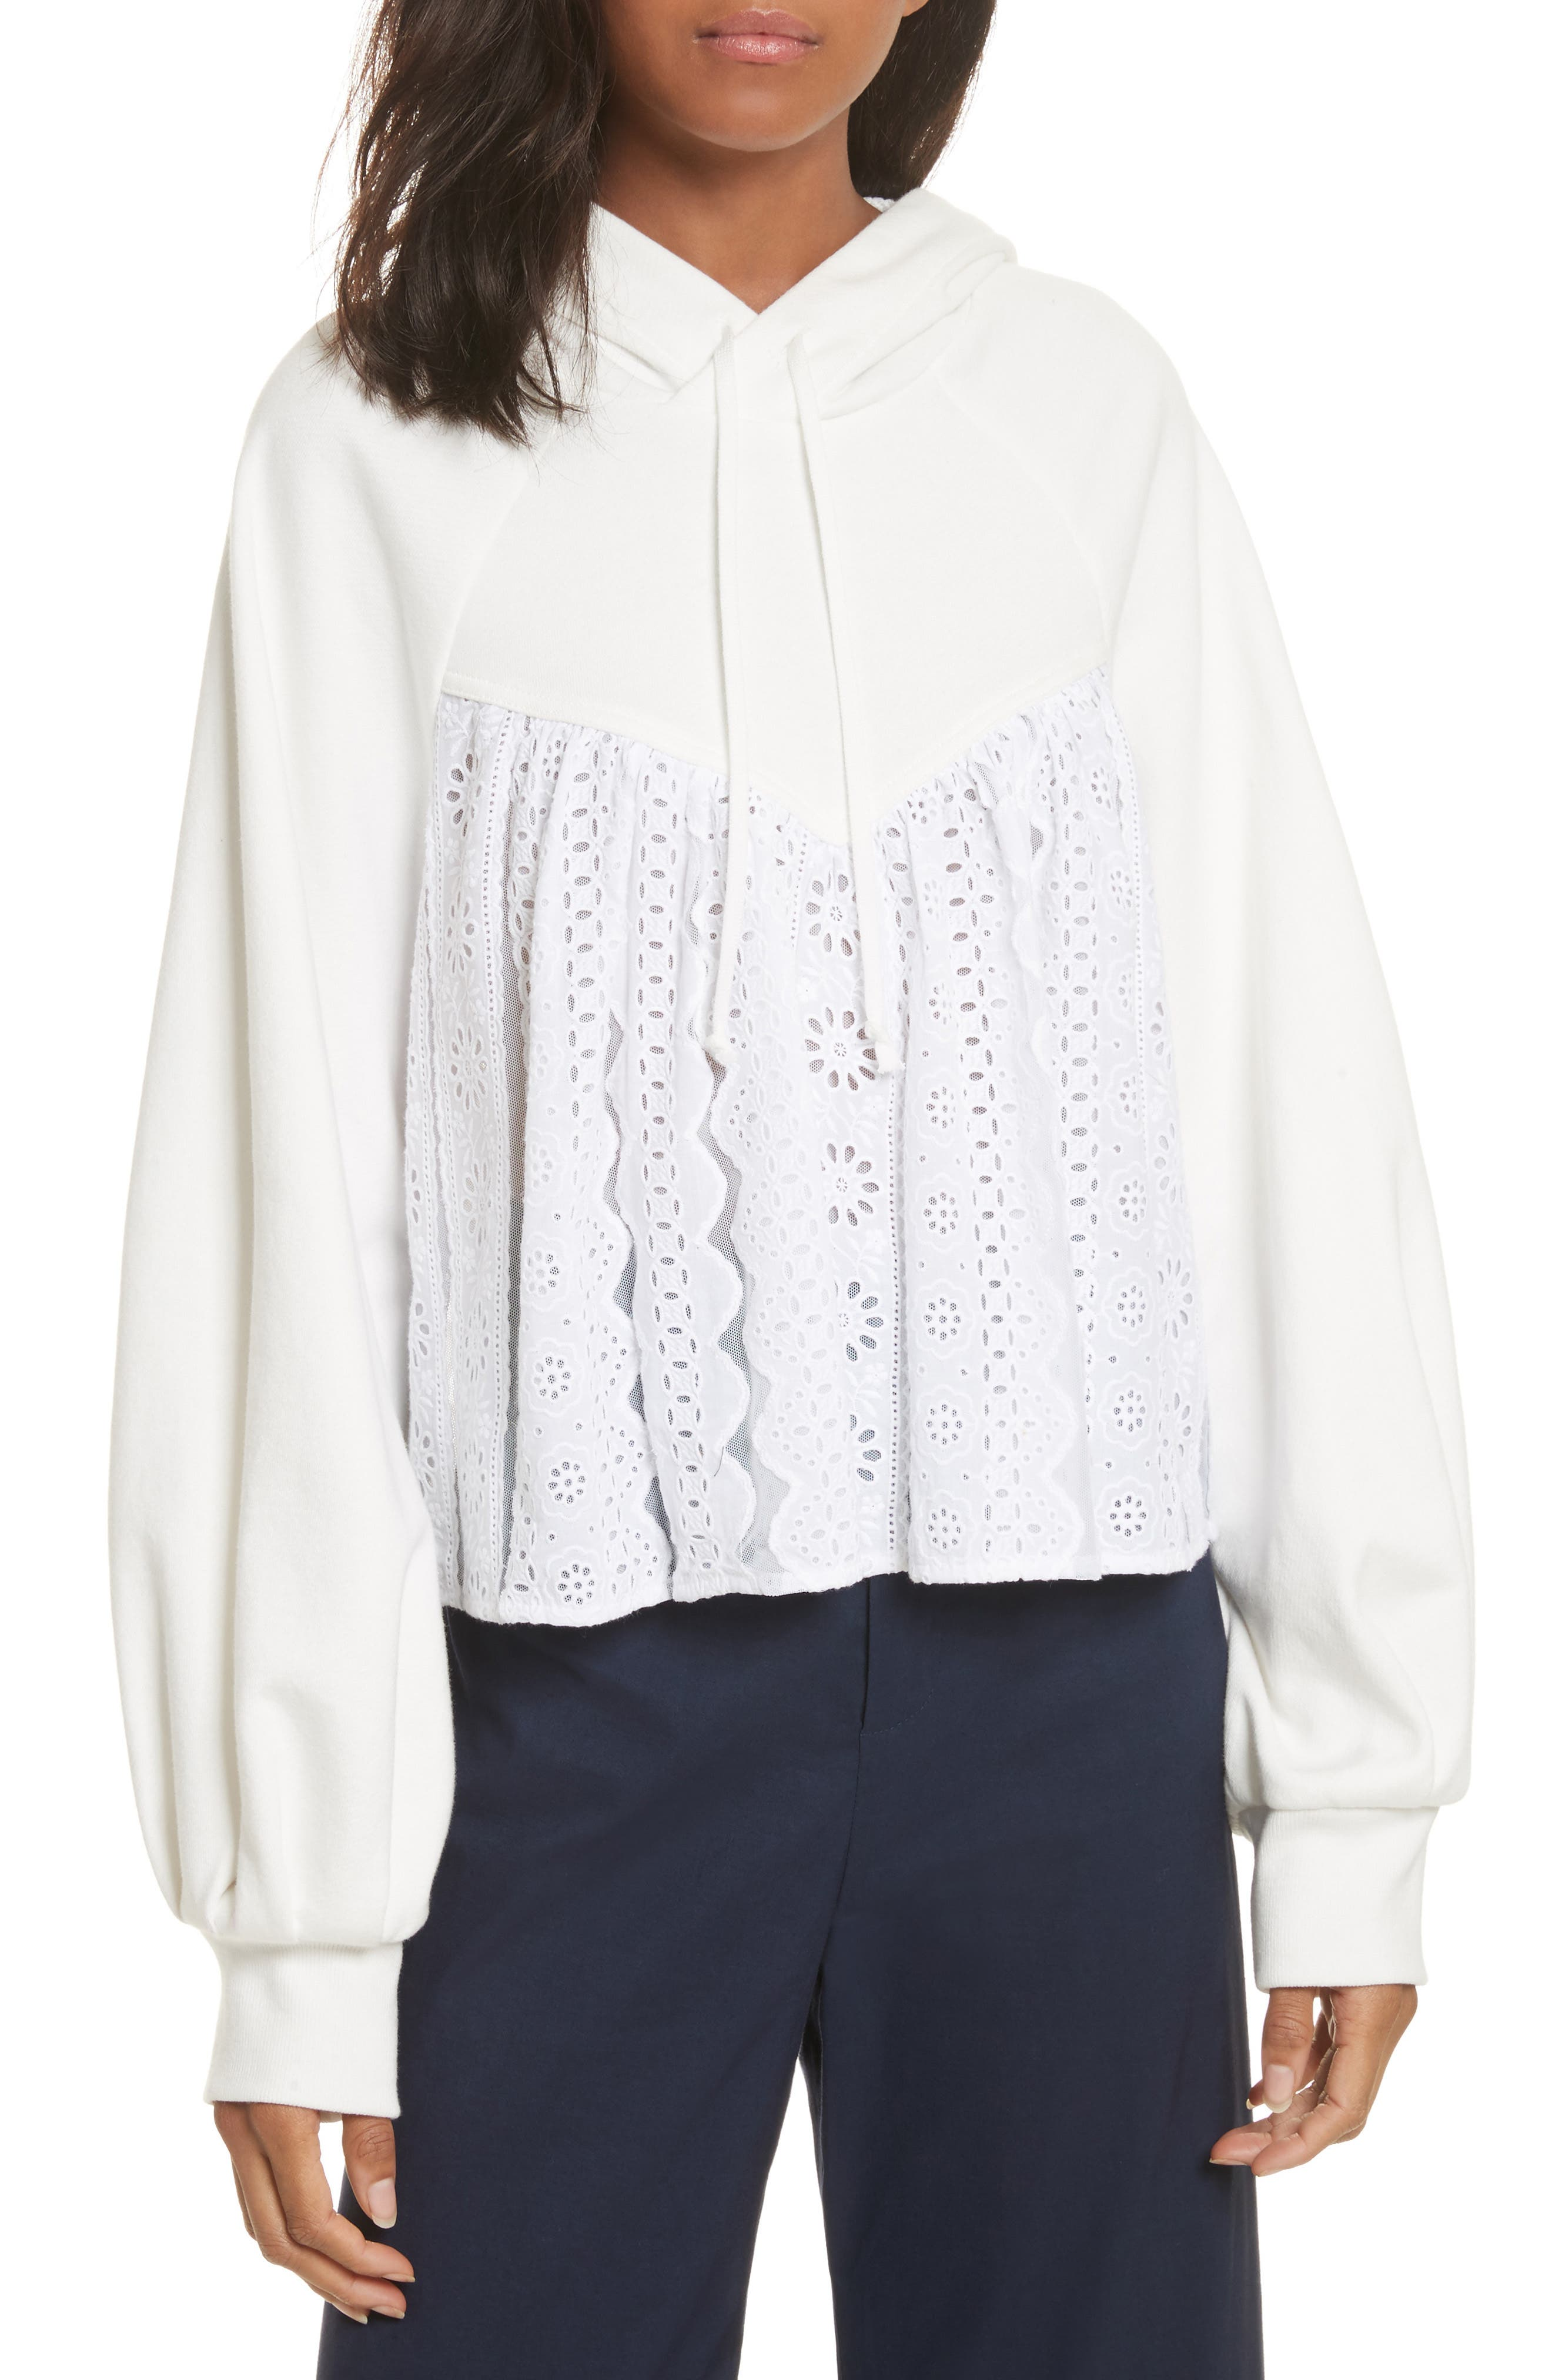 Eyelet Accent Sweatshirt,                         Main,                         color, White With White Mesh